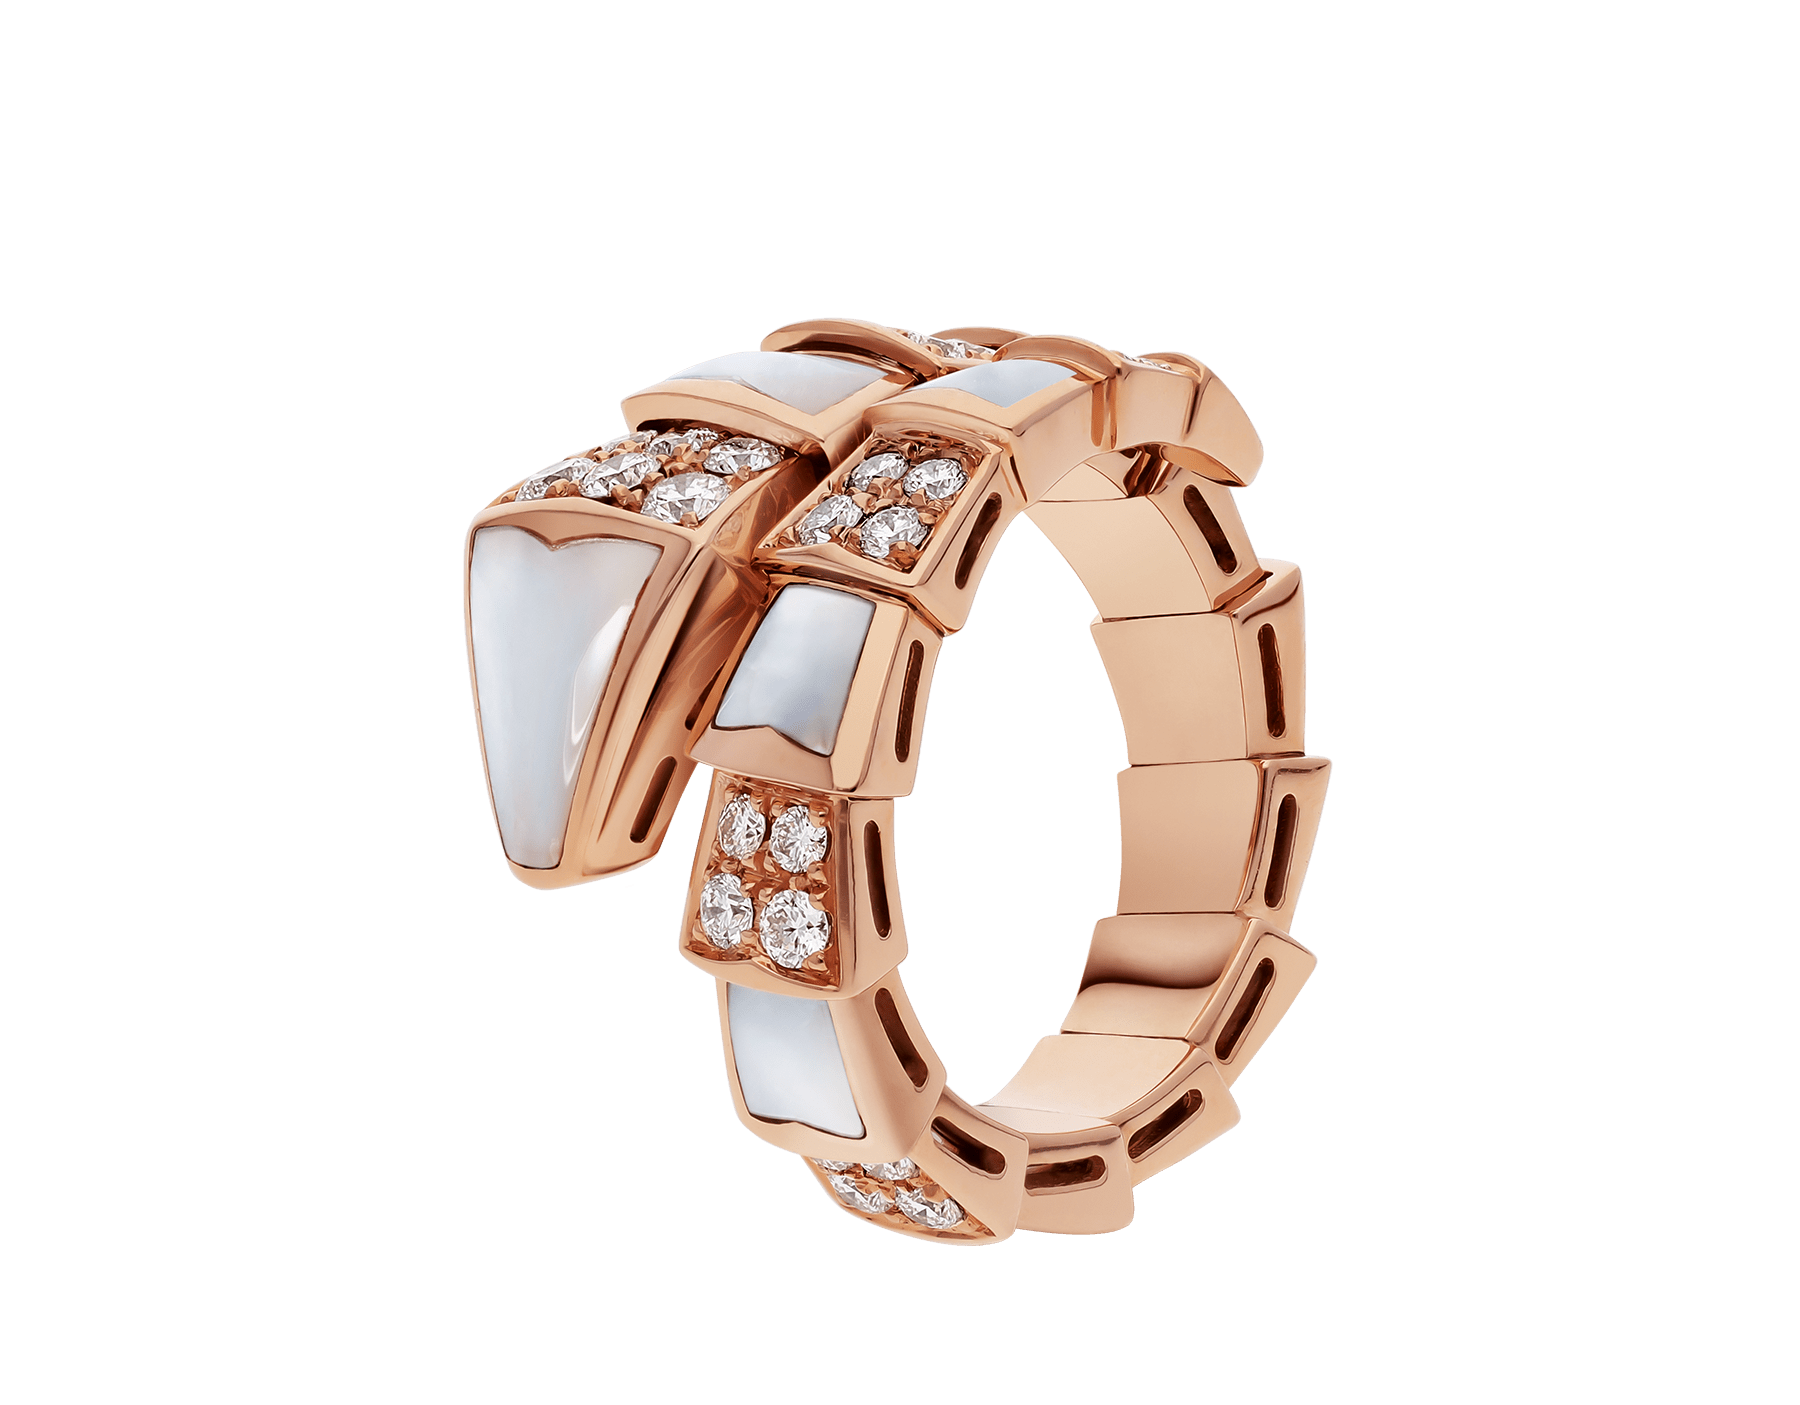 Serpenti Viper one-coil ring in 18 kt rose gold, set with mother-of-pearl elements and pavé diamonds. AN857081 image 1